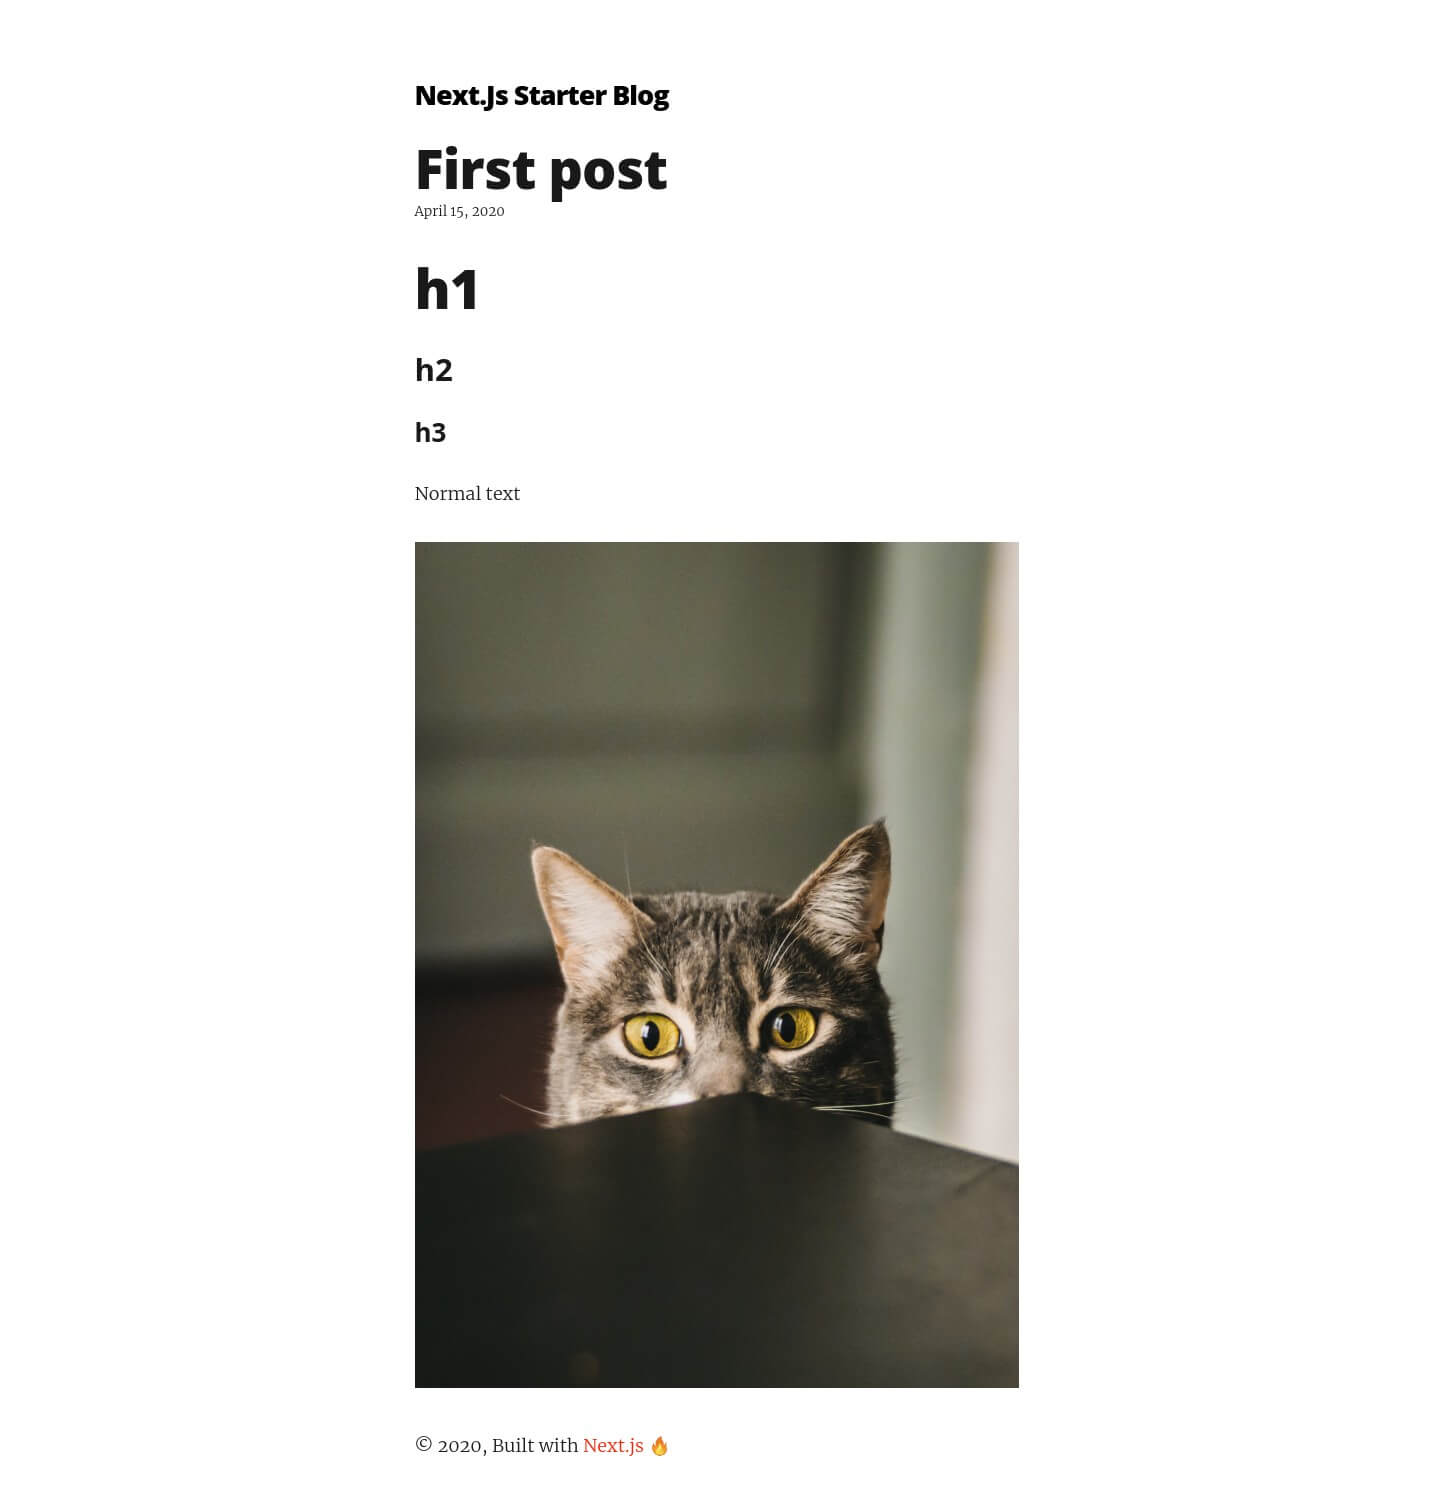 Blog post with cat image